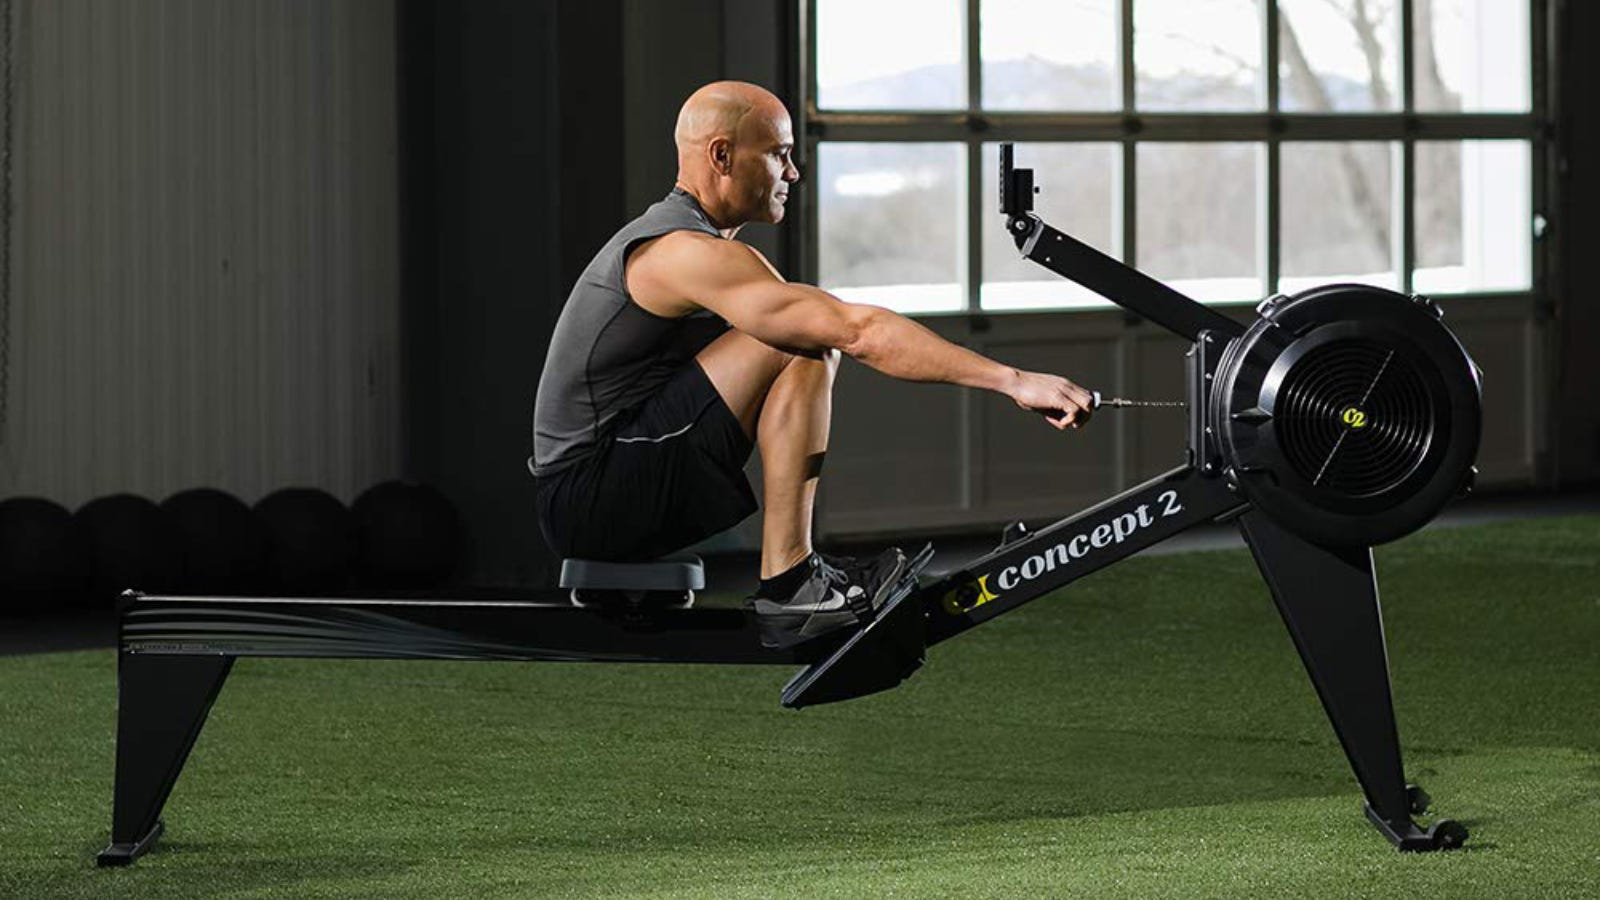 Man Using Concept2 Model E Rower